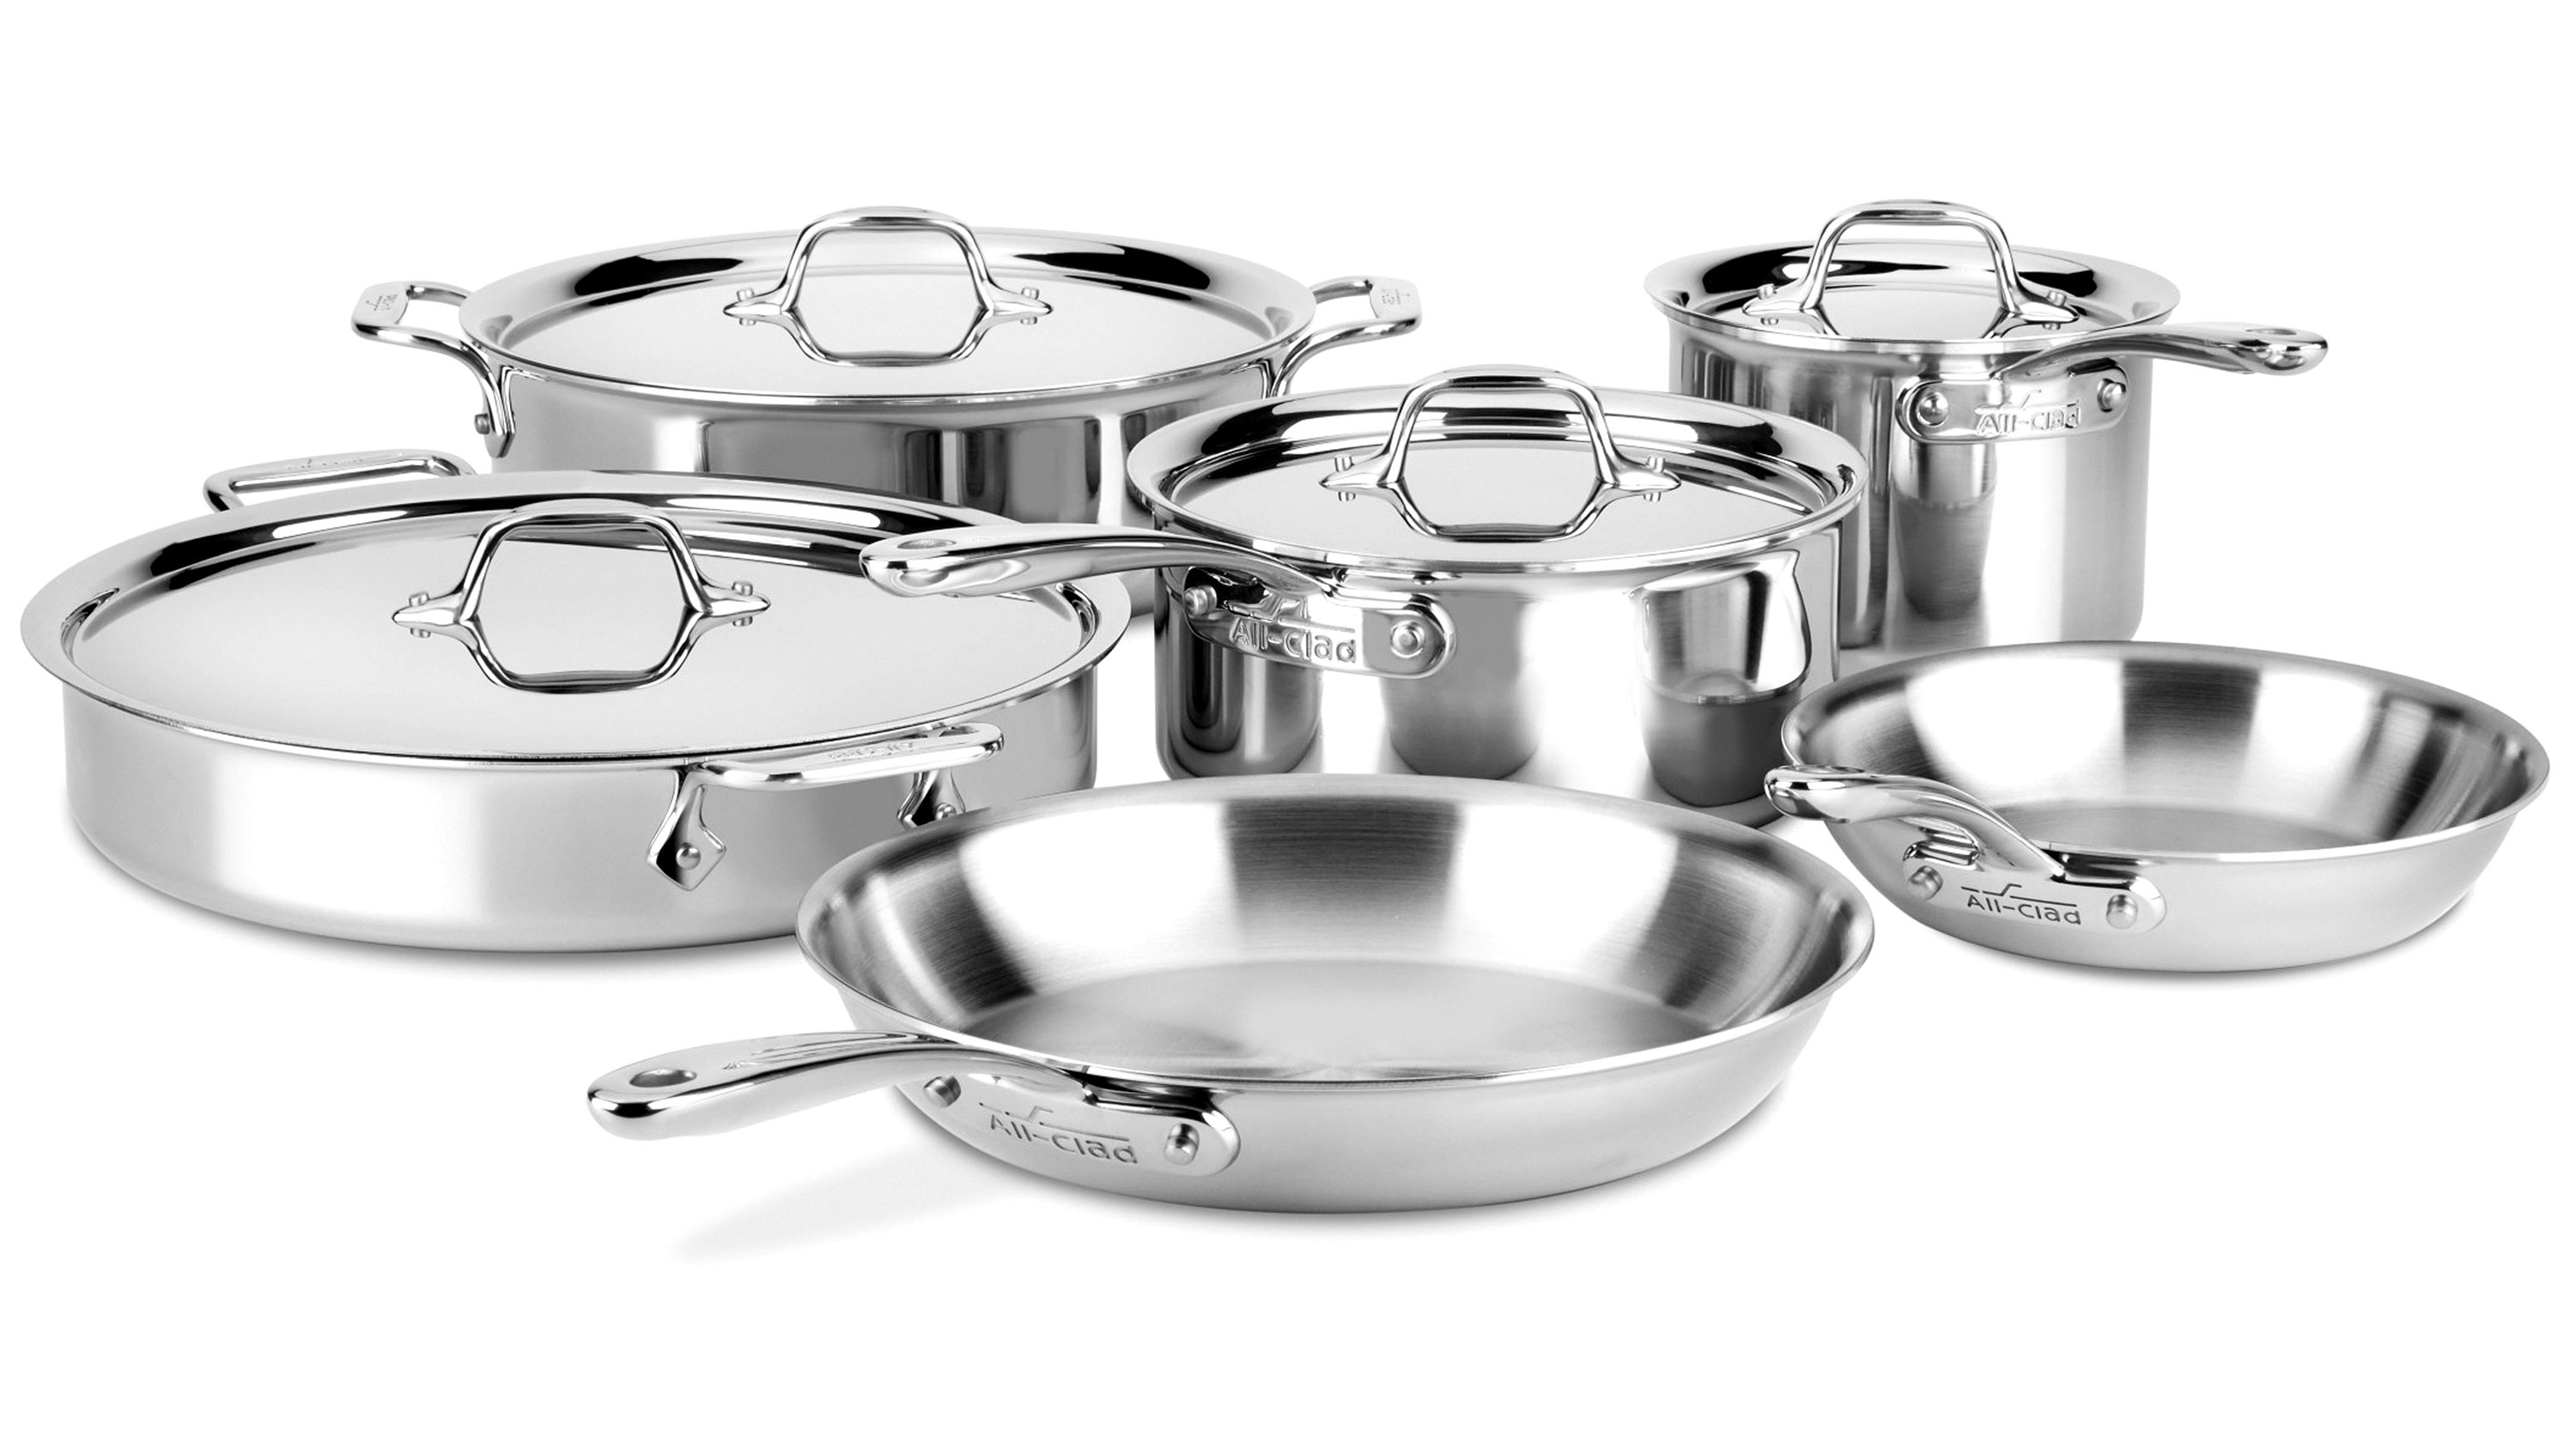 All Clad D3 Compact Cookware Set 10 Piece Stainless Steel